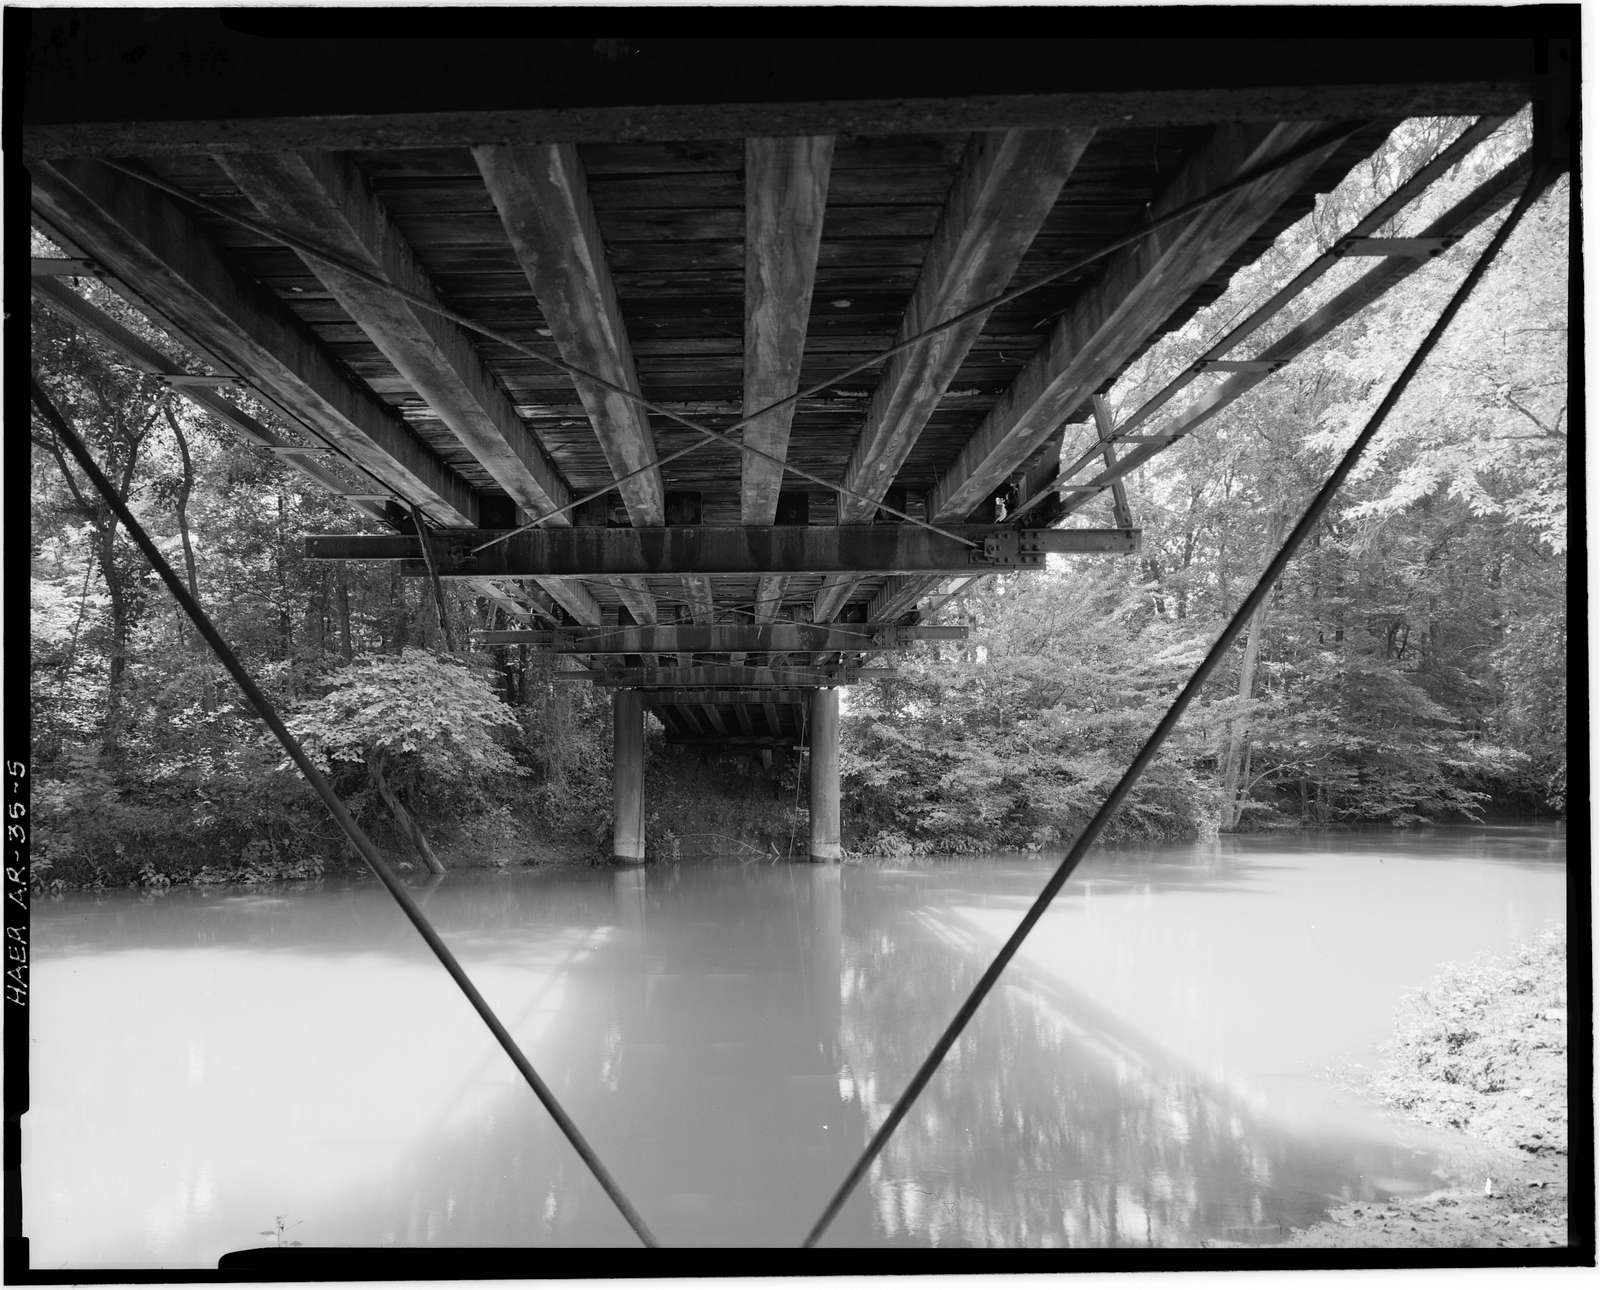 Little Cossatot River Bridge, Spanning Little Cossatot River at County Road No. 139, Lockesburg, Sevier County, AR